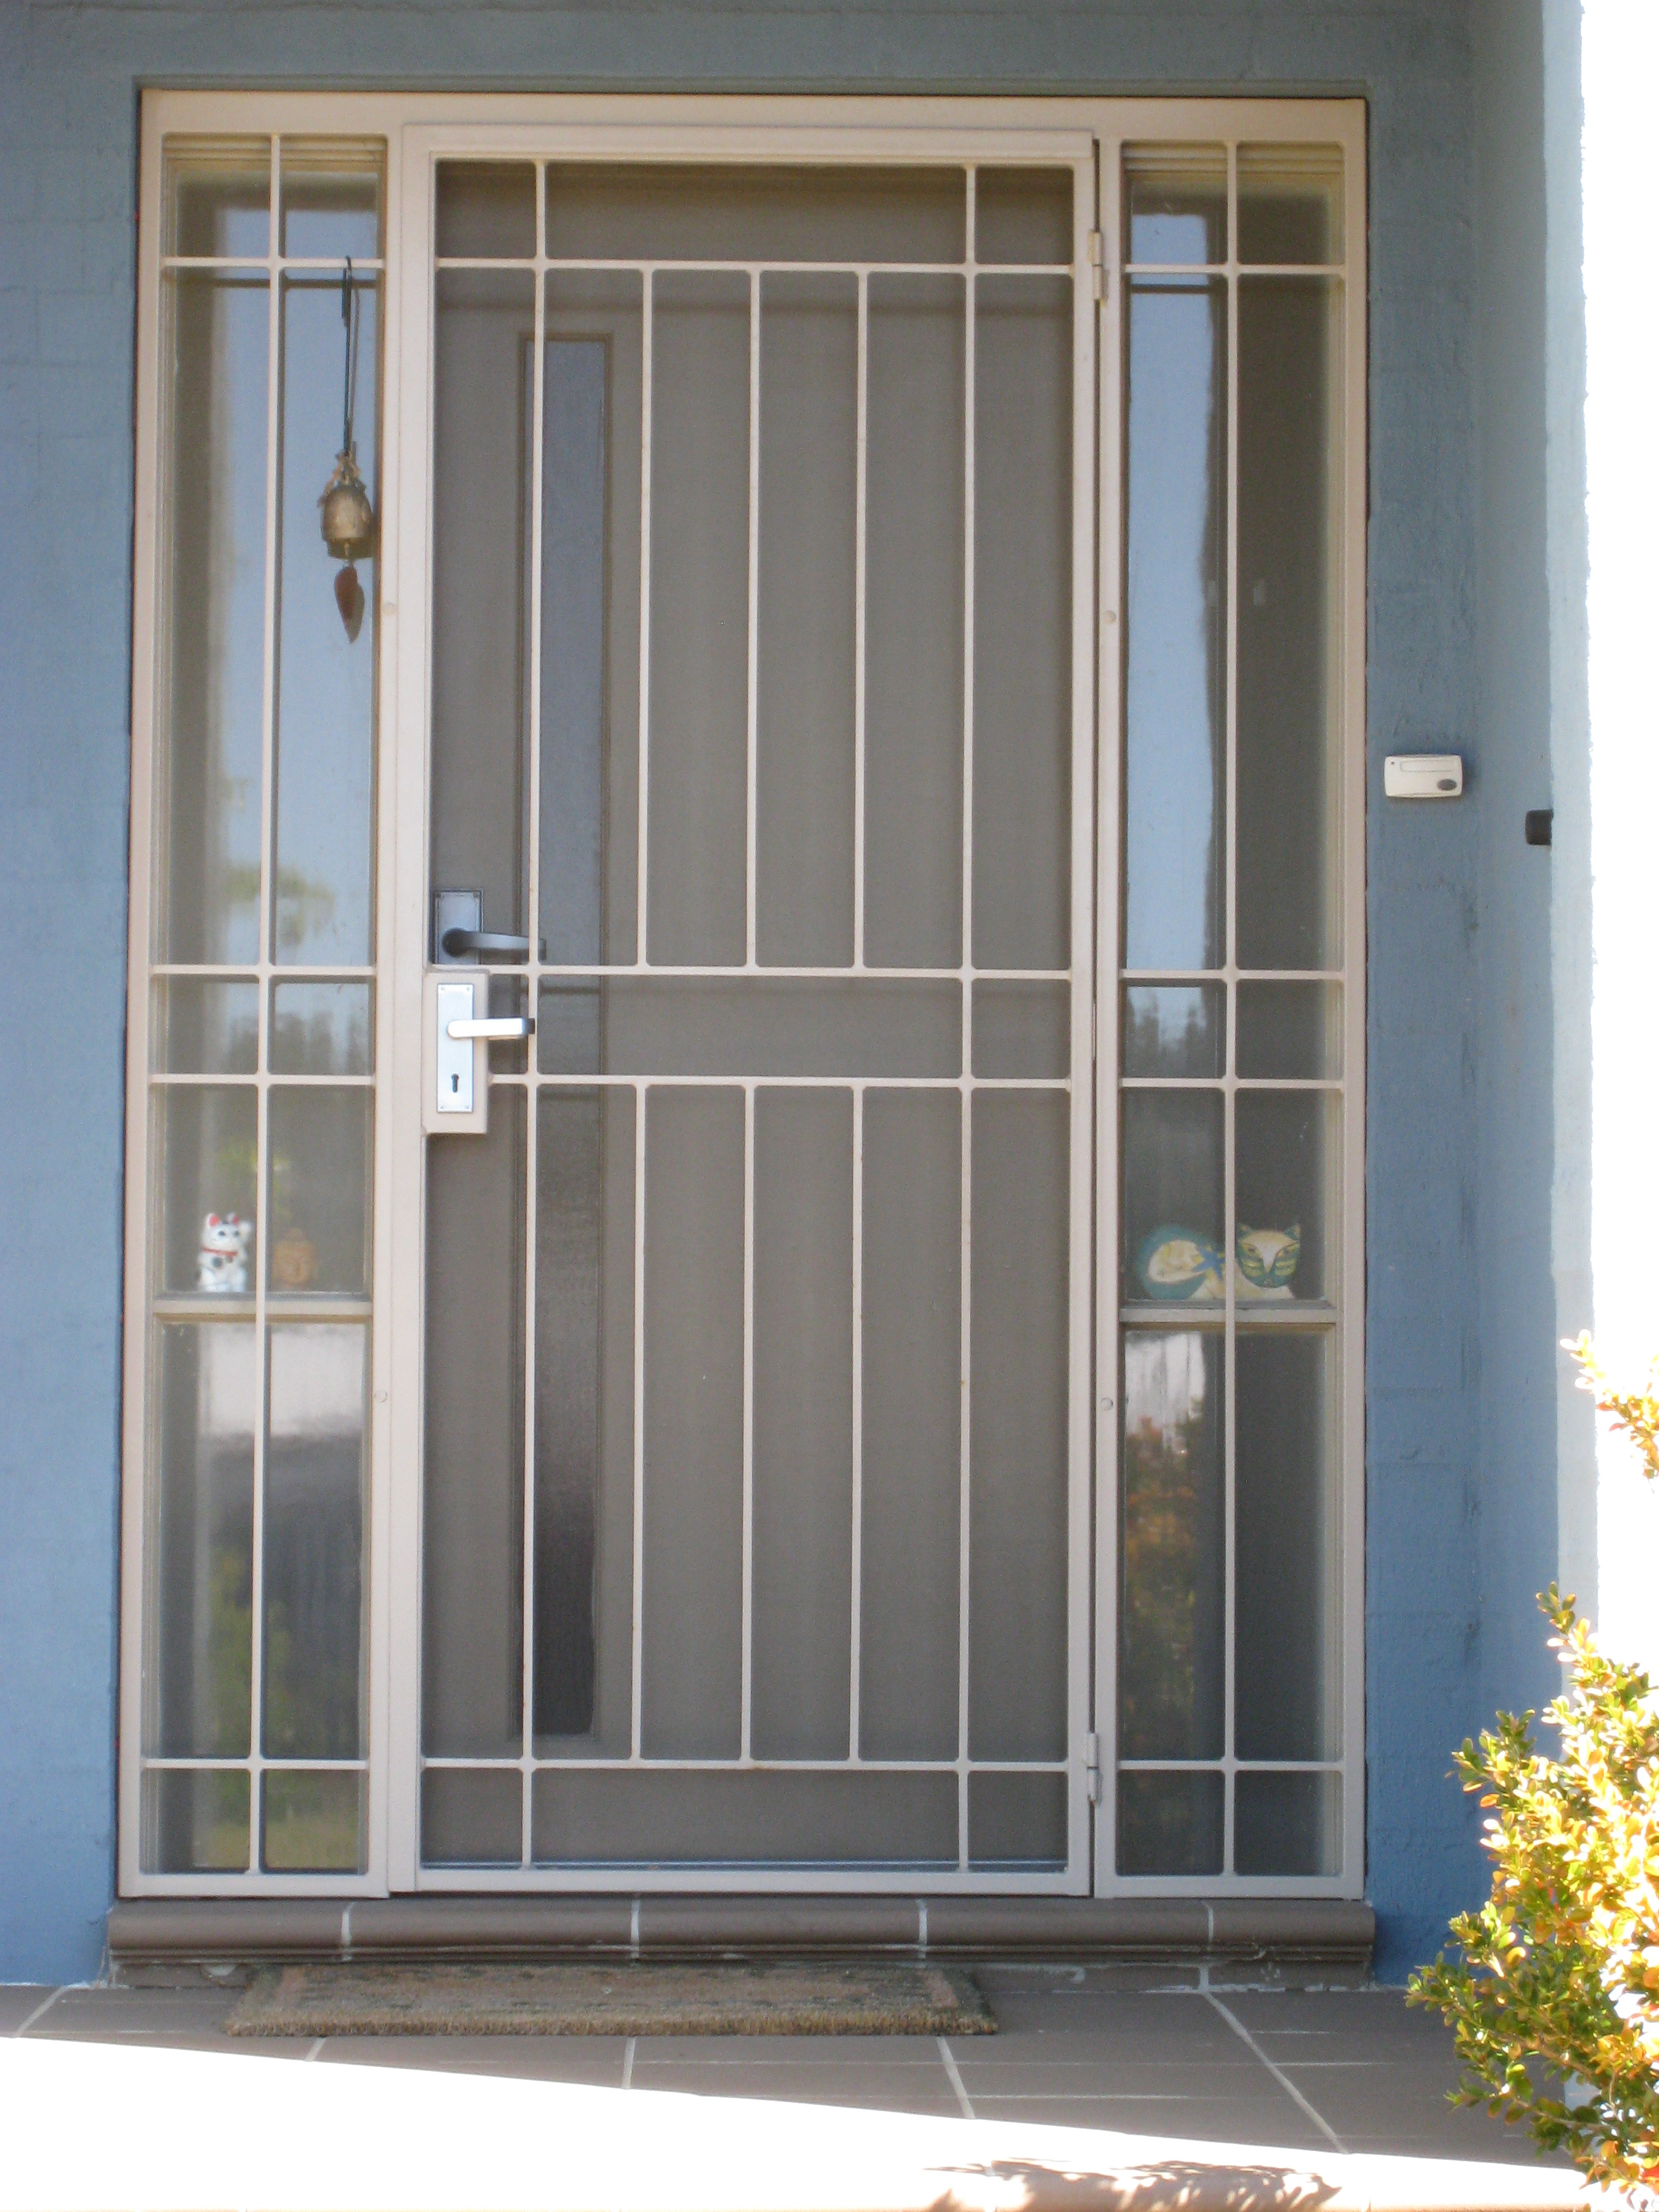 Interior steel security doors examples ideas pictures just another doors design - White security screen door ...